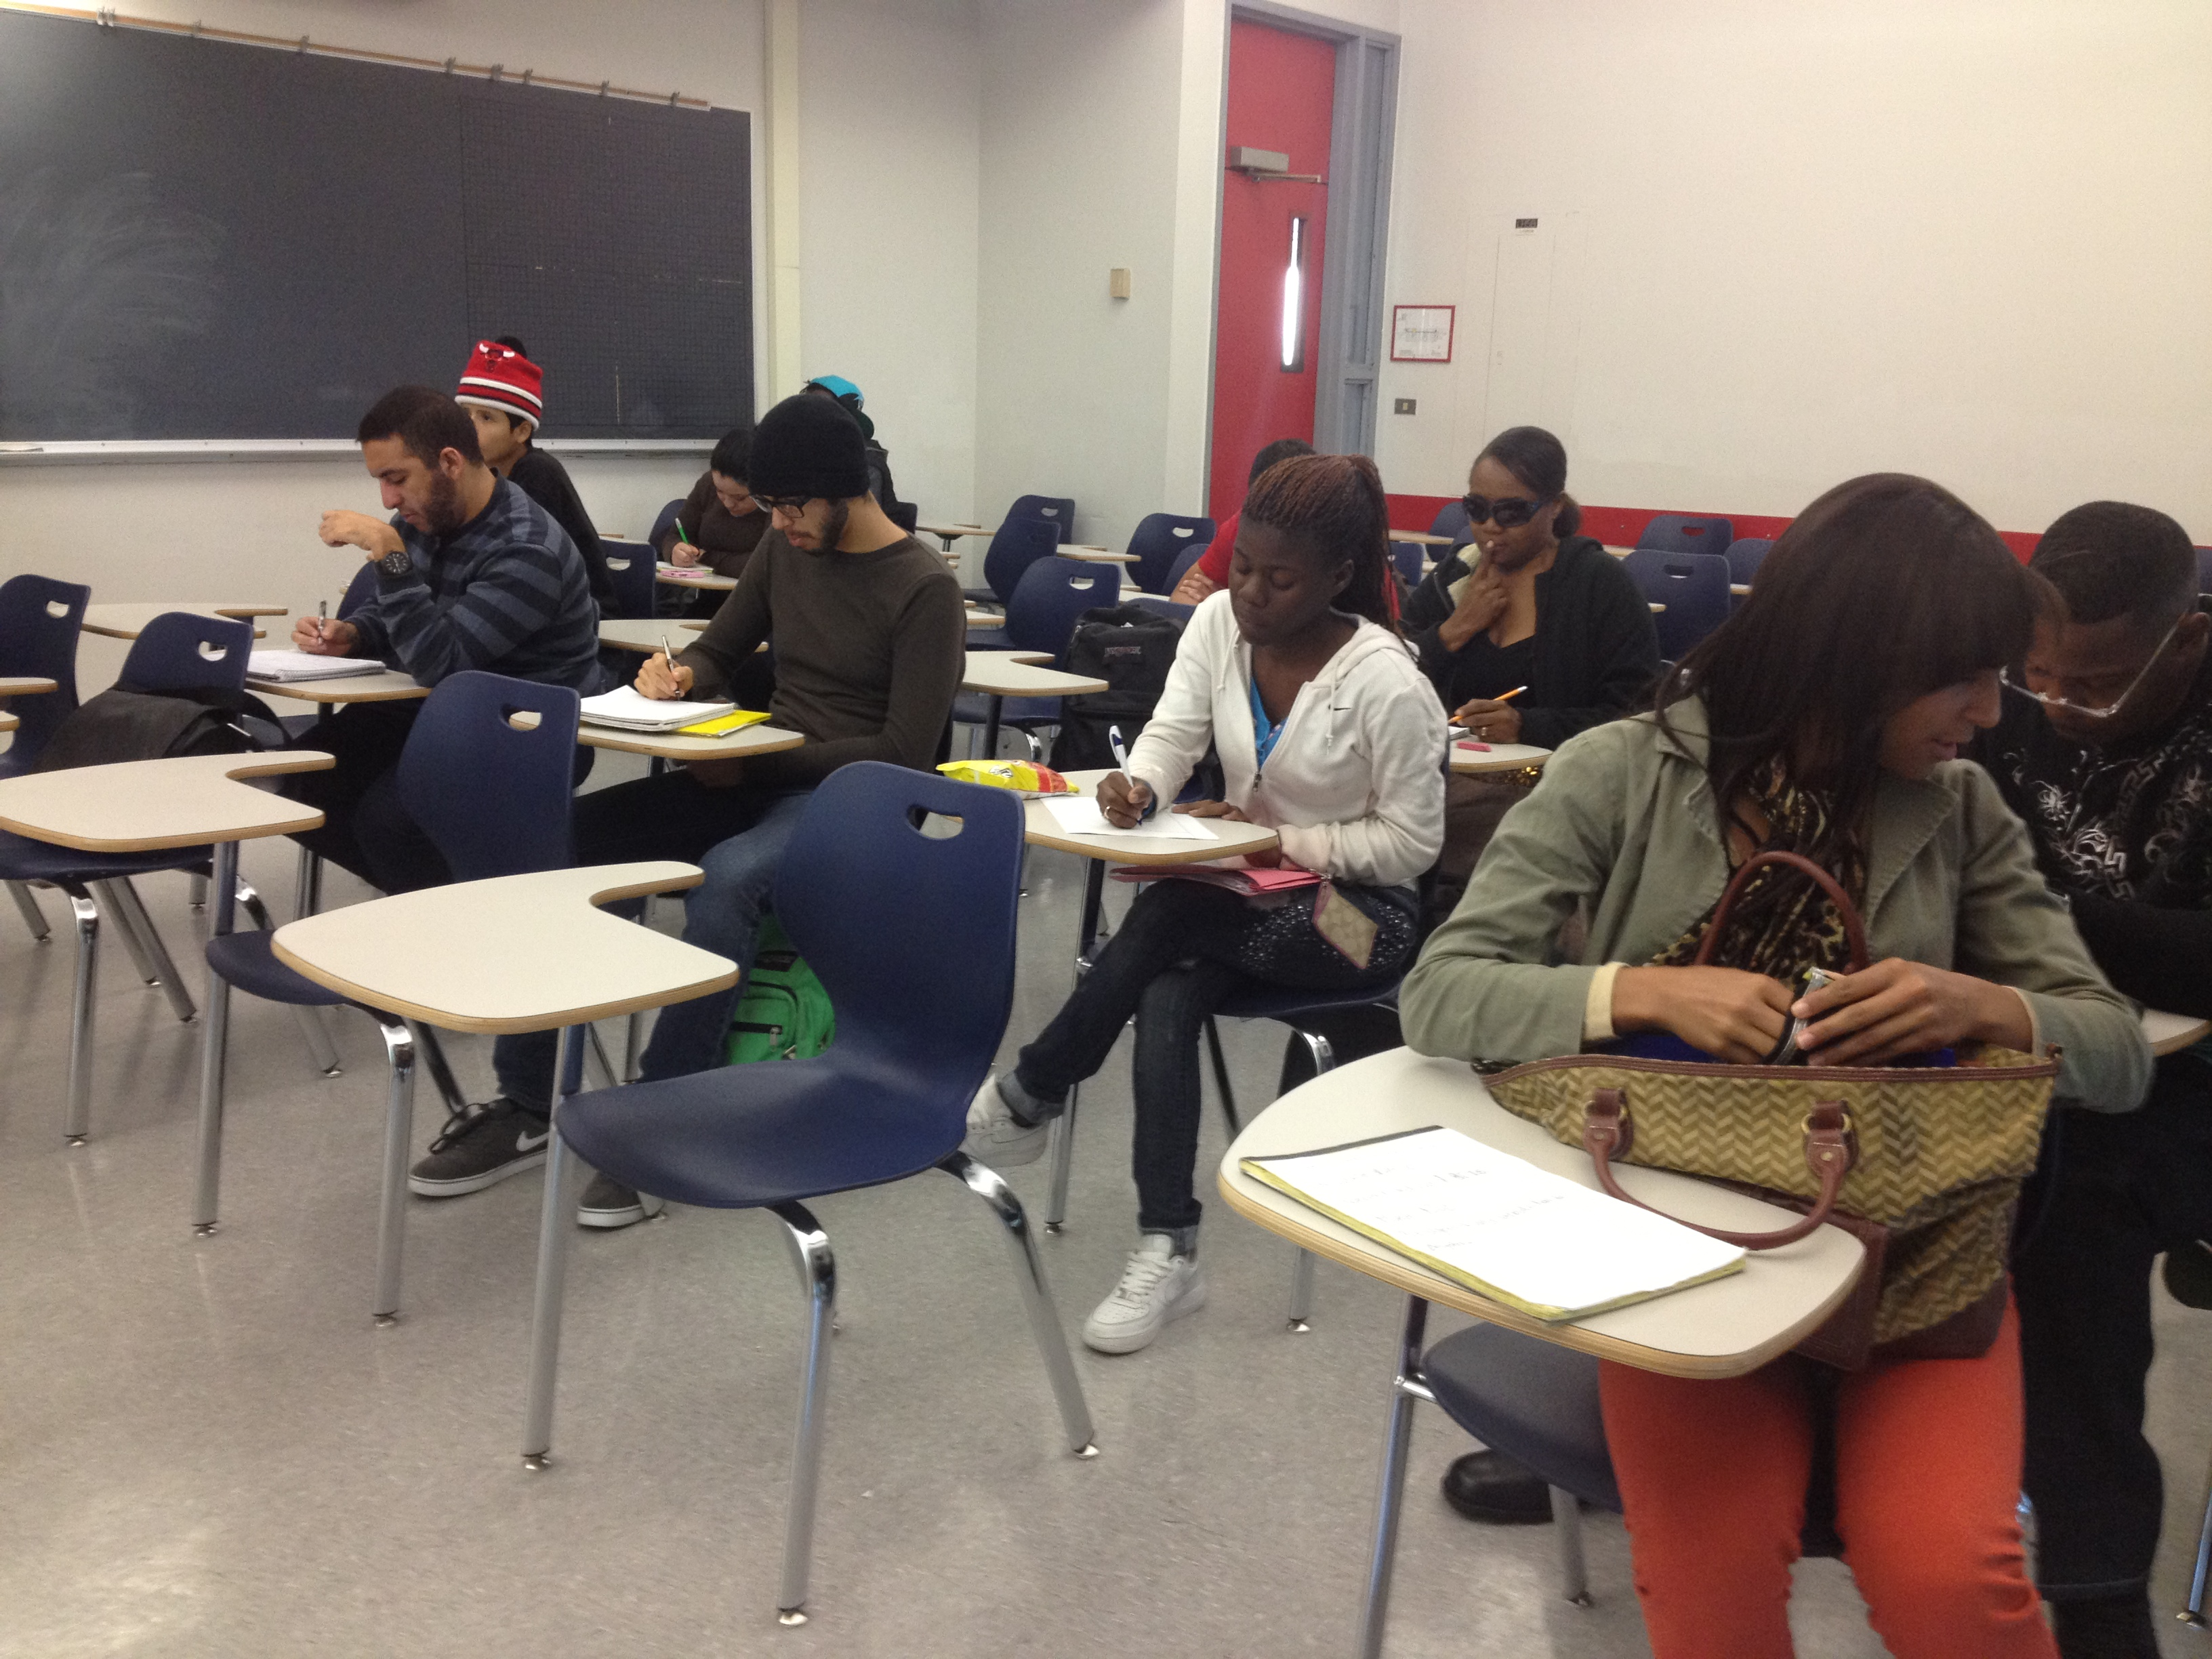 Math humanidades subjects miami dade college